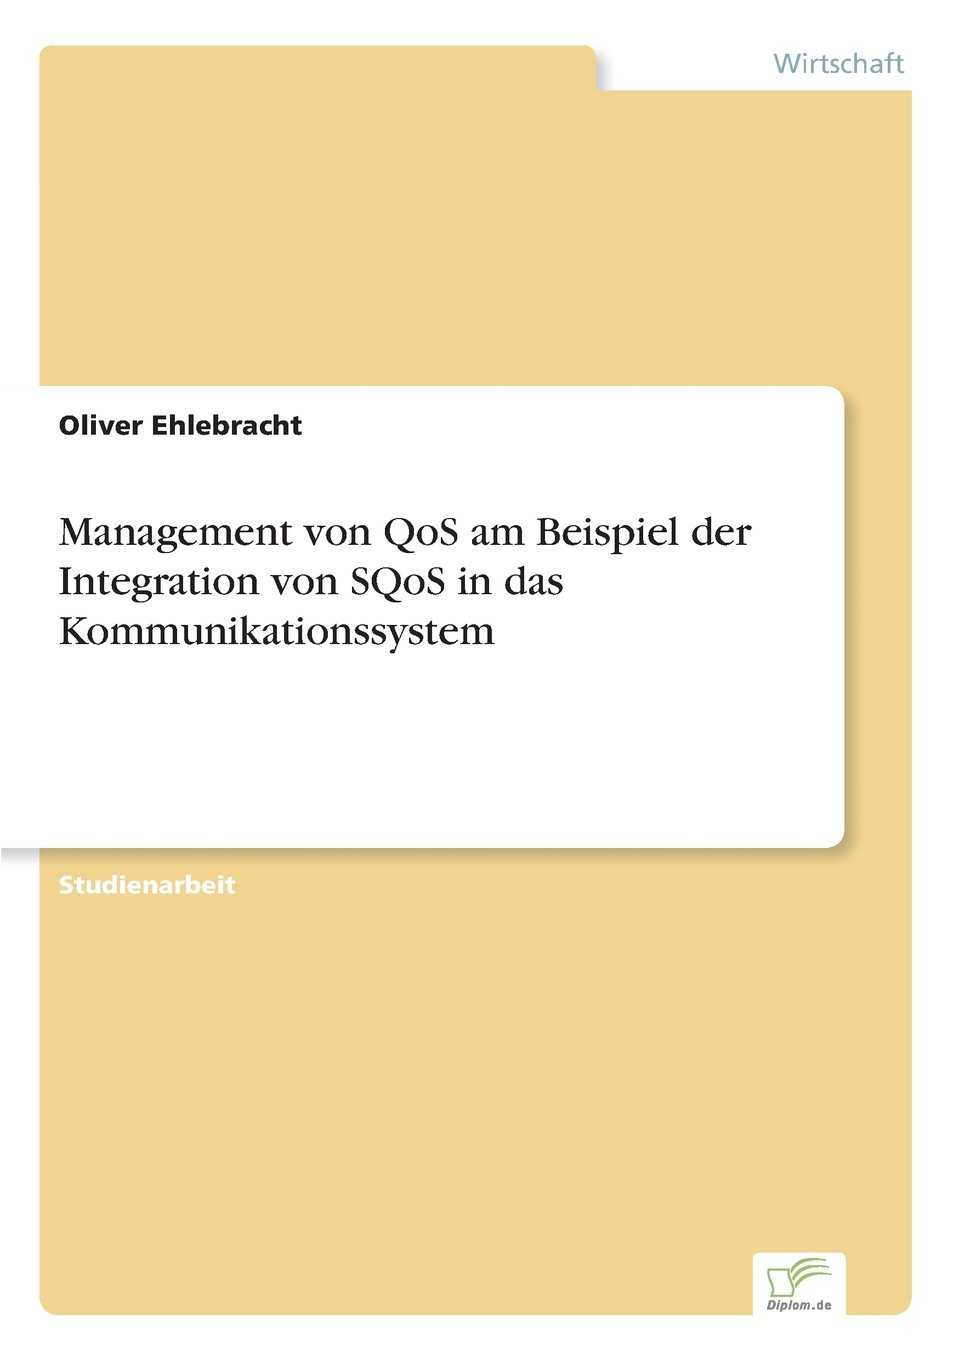 Management von QoS am Beispiel der Integration von SQoS in das Kommunikationssystem (German Edition) PDF